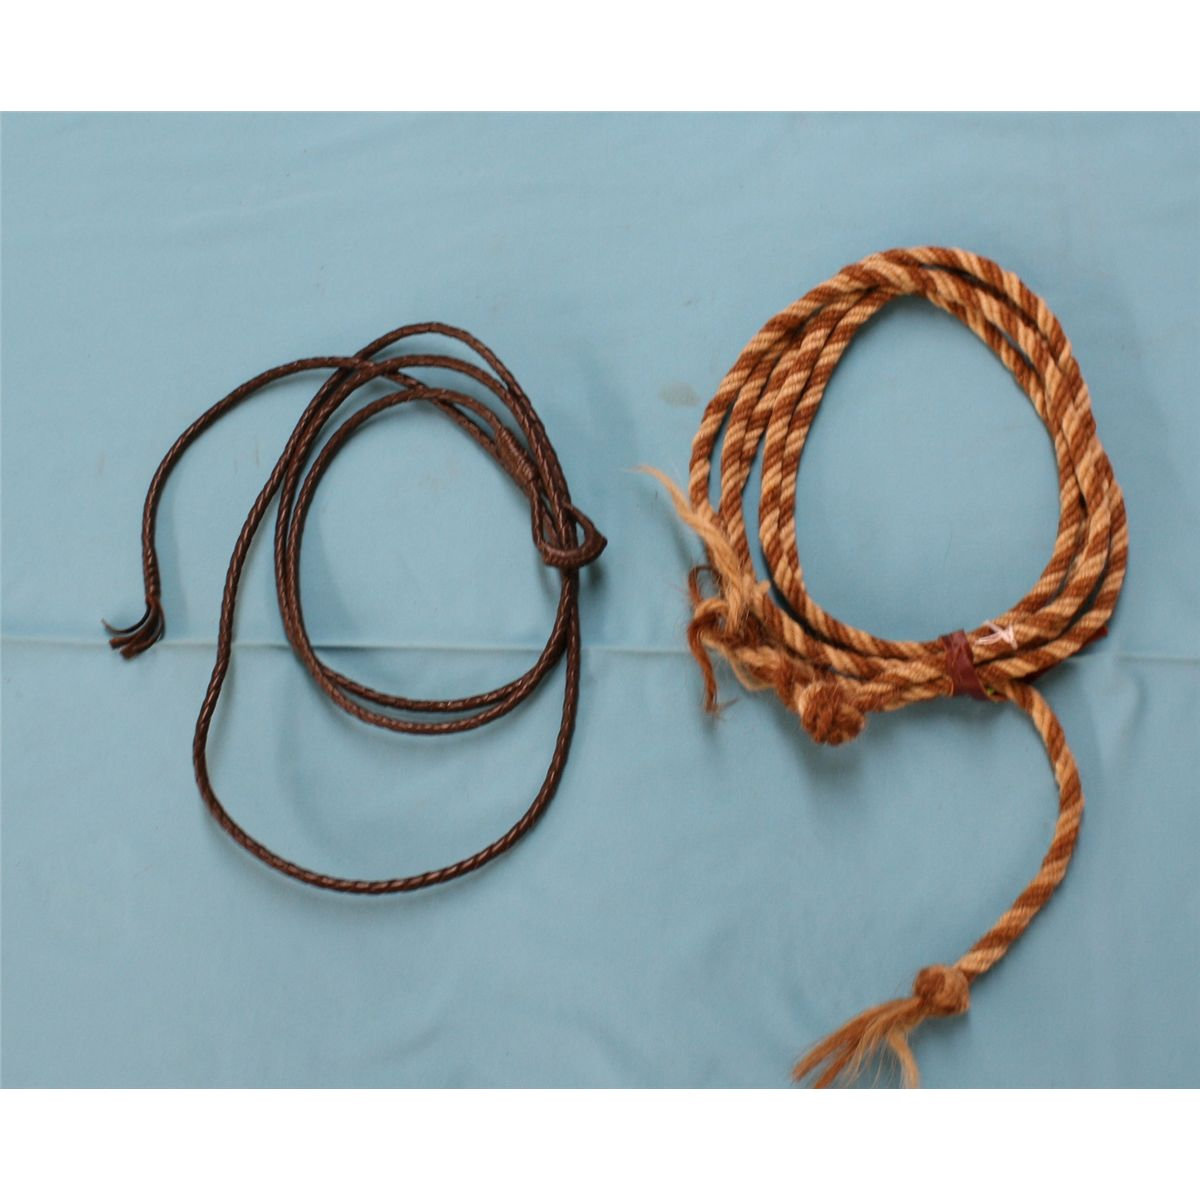 Horsehair macate and small braided saddle rope Est. $50-75